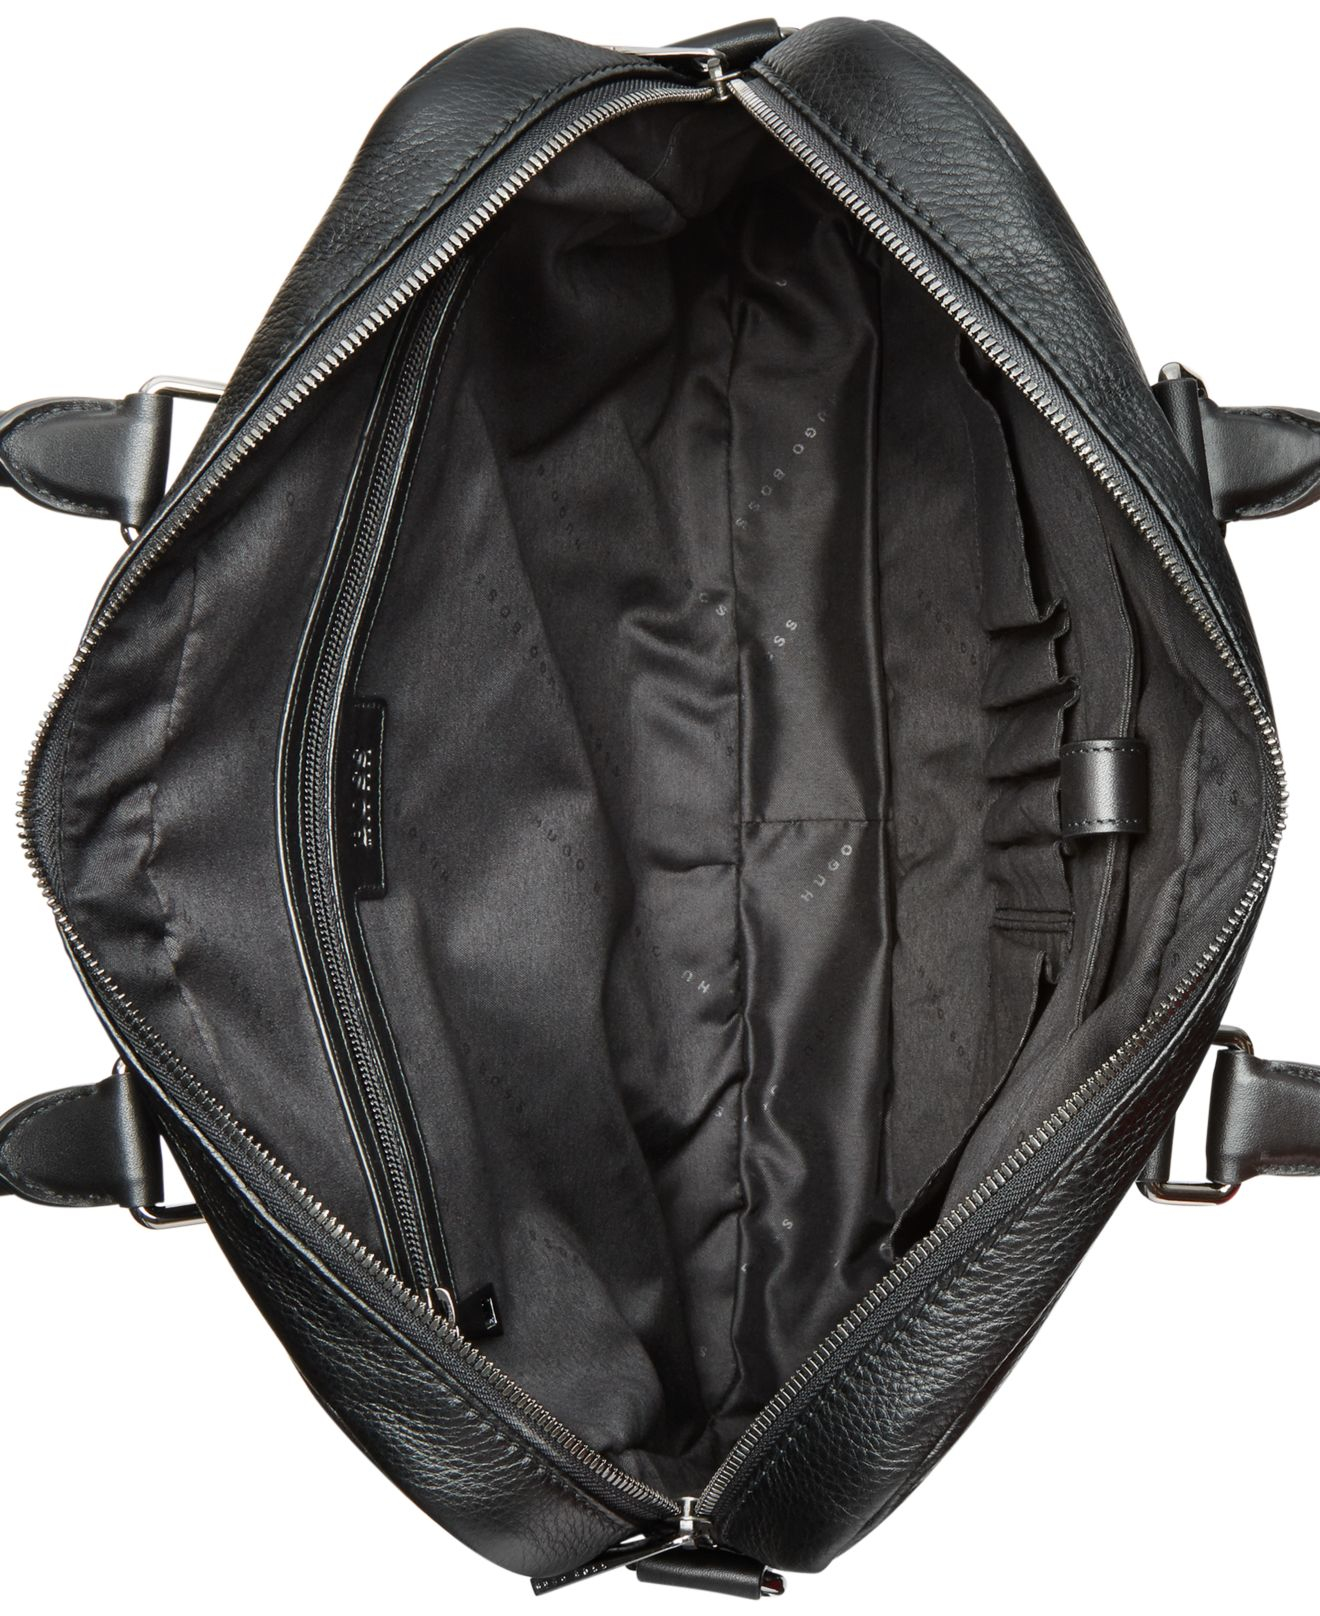 c802a3cc9 BOSS Morval Leather Work Bag in Black for Men - Lyst